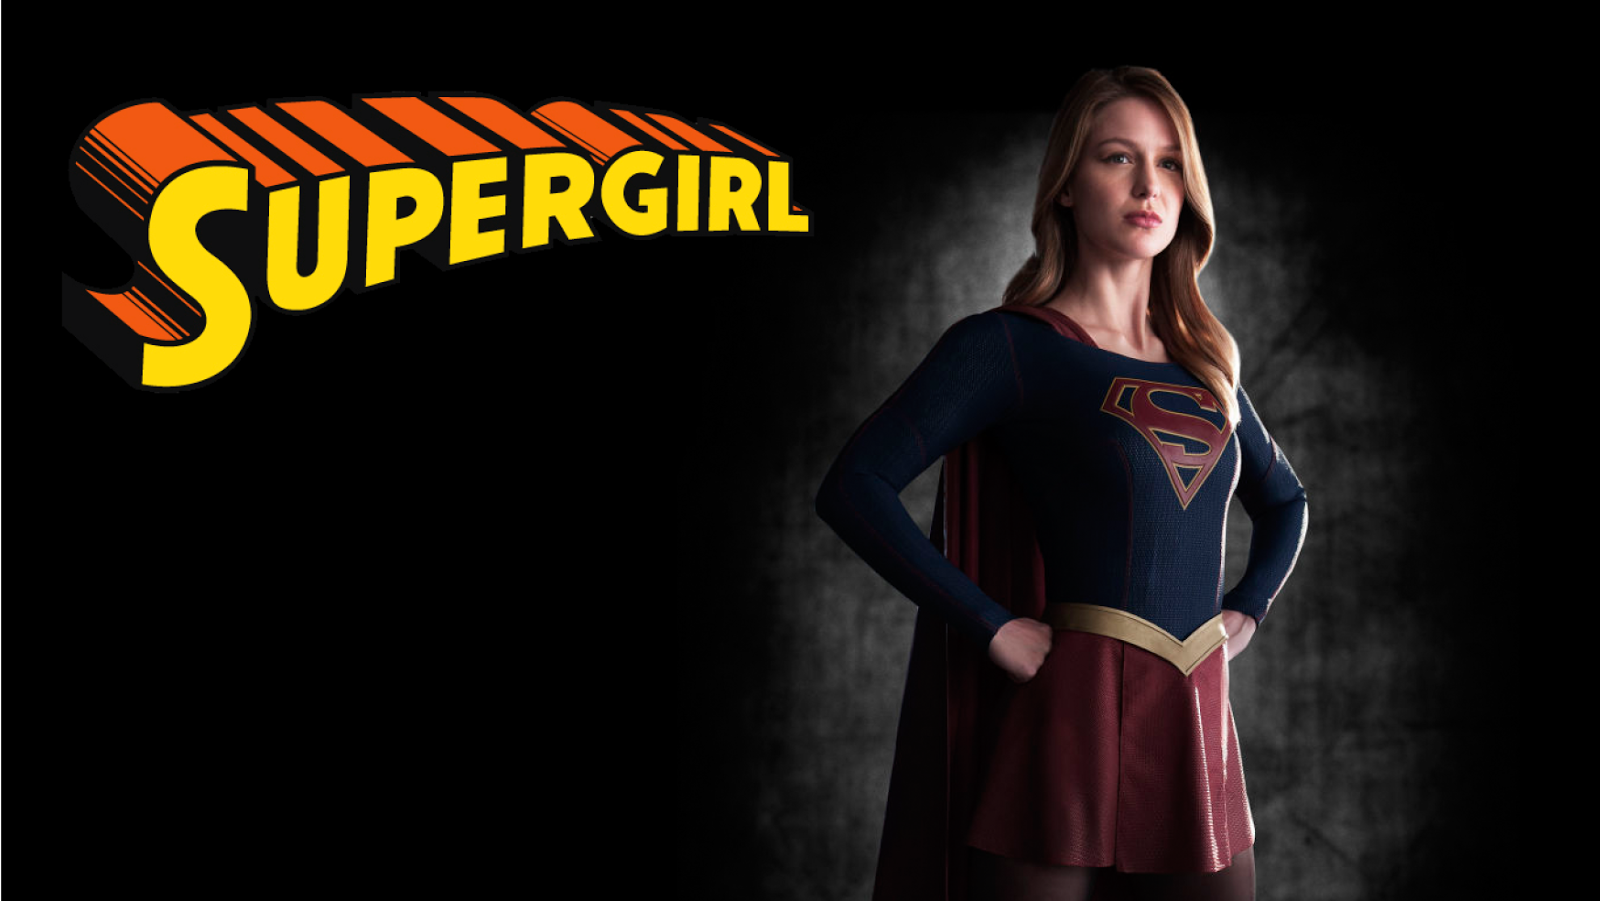 By Ken Levine Wonder Woman My Review: By Ken Levine: Supergirl Is Becoming Supertrain